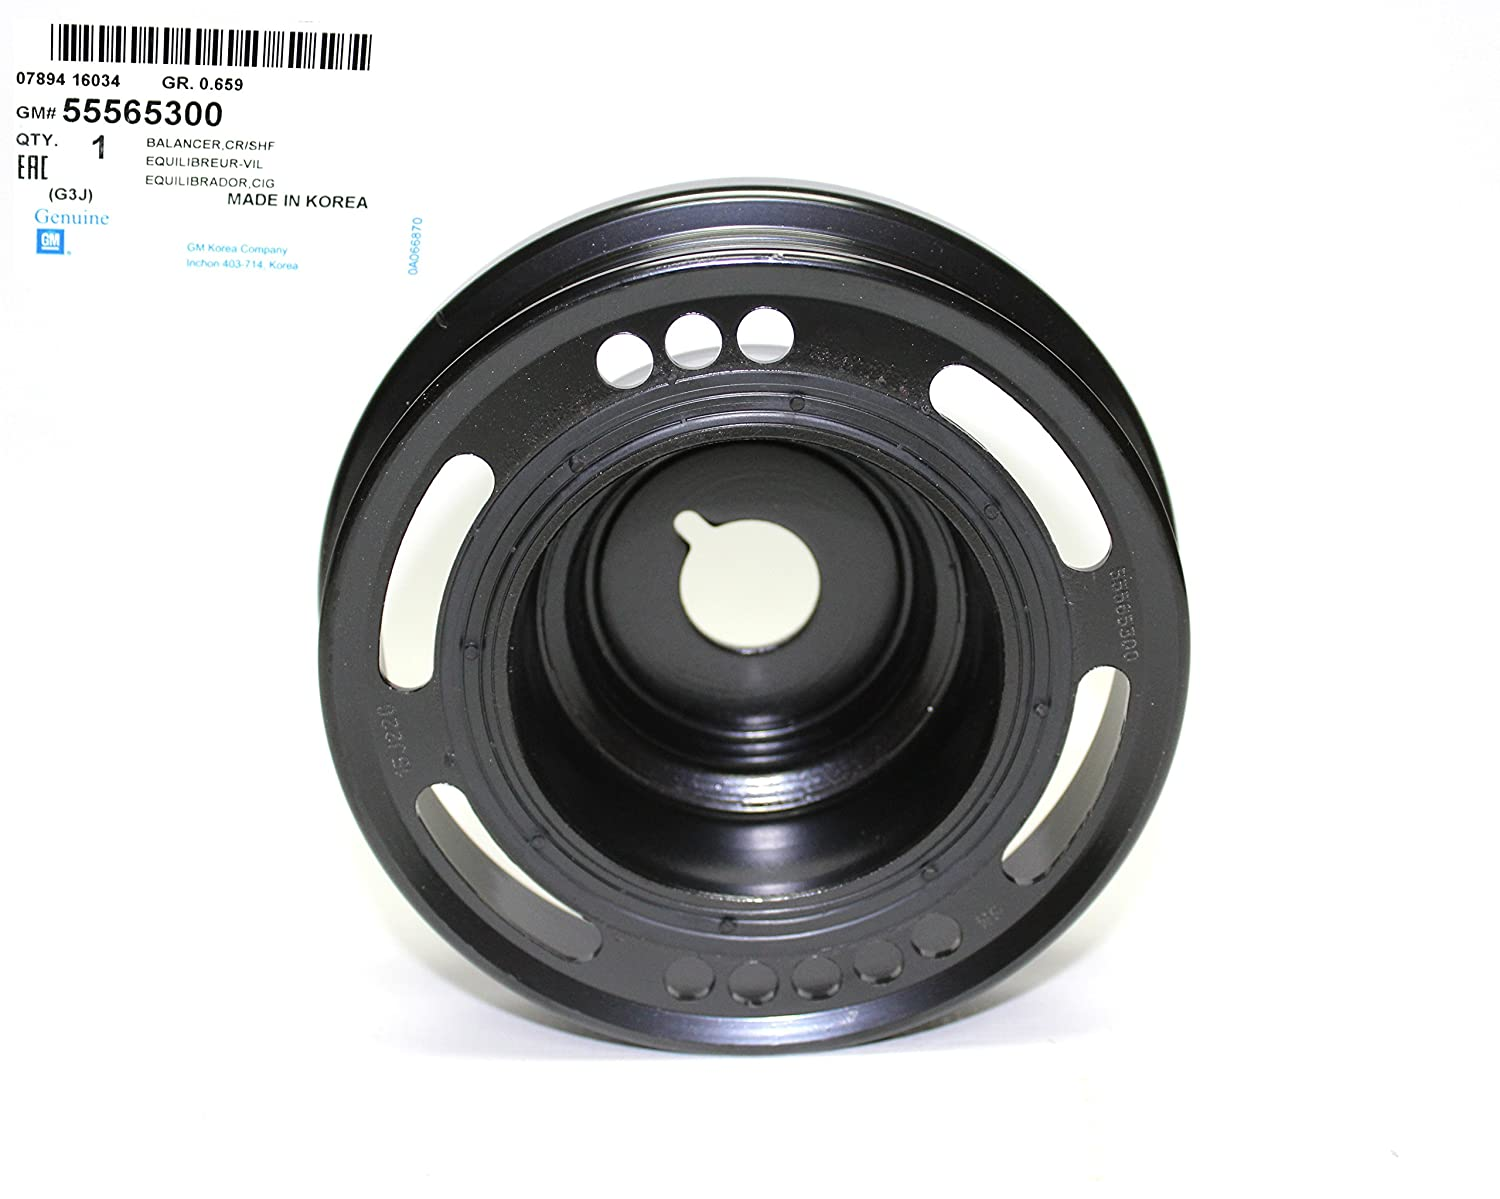 General Motors 55565300, Engine Crankshaft Pulley